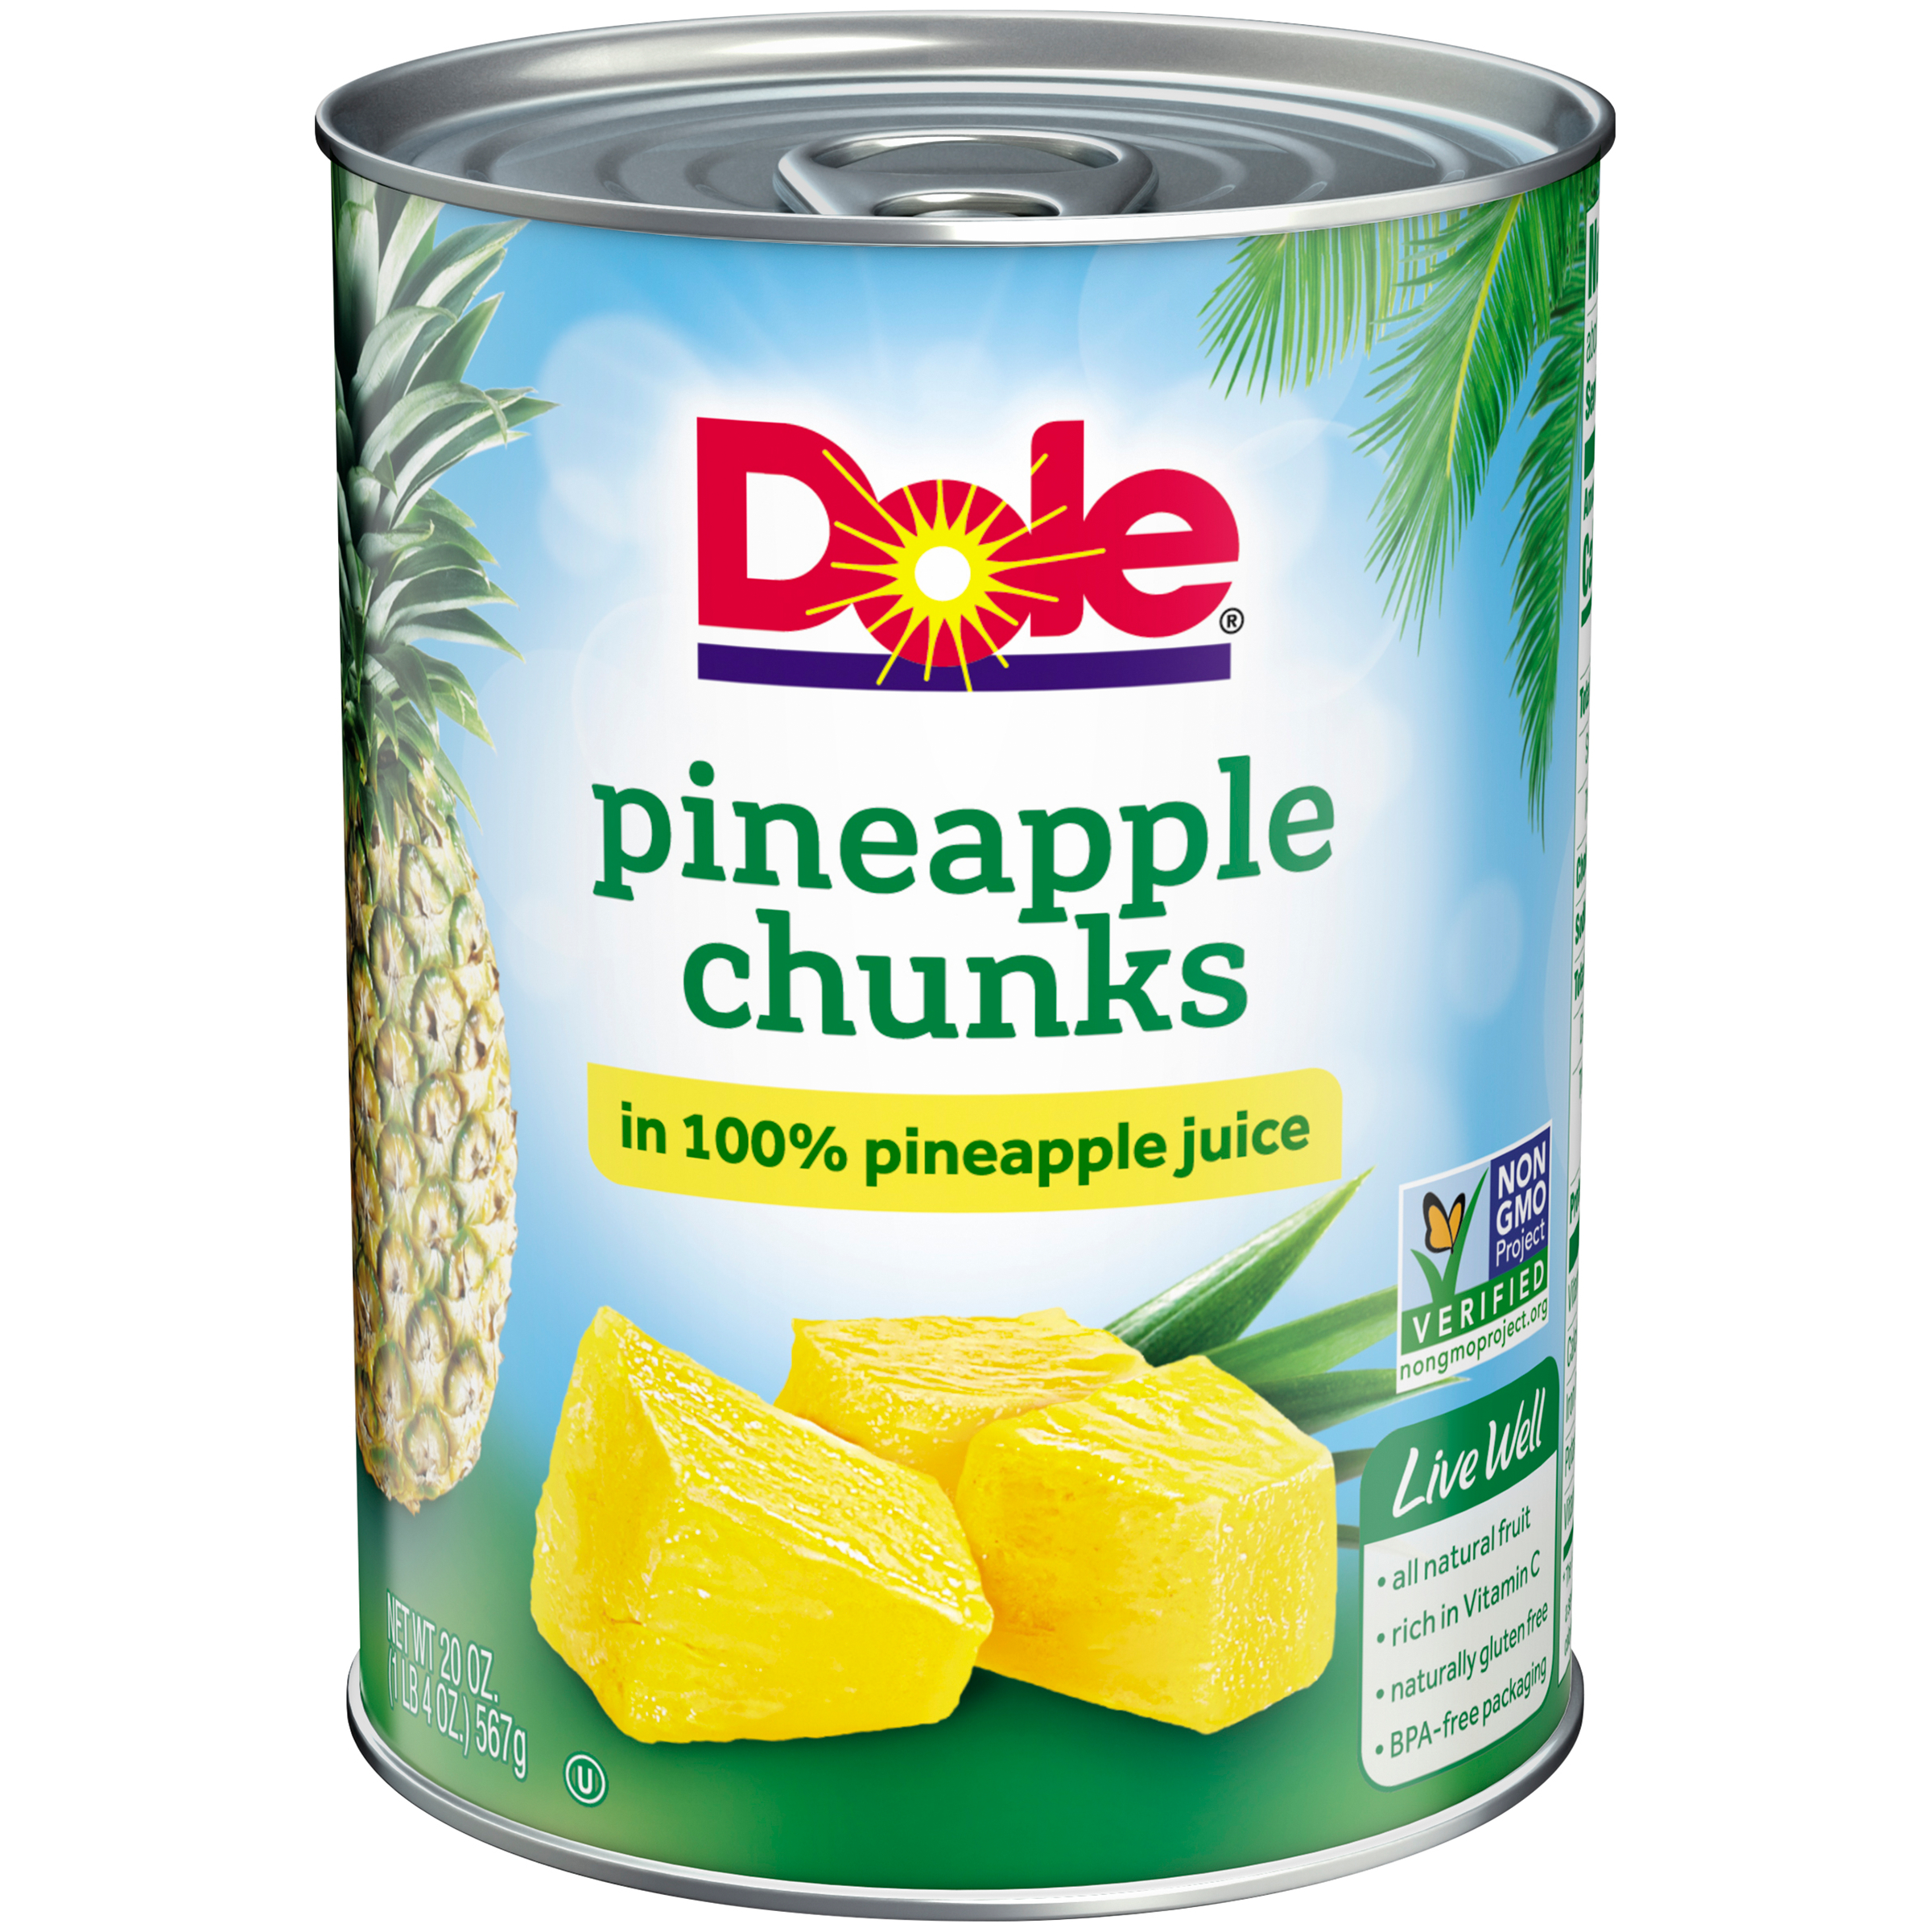 DOLE? Pineapple Chunks in 100% Pineapple Juice 20 oz. Can